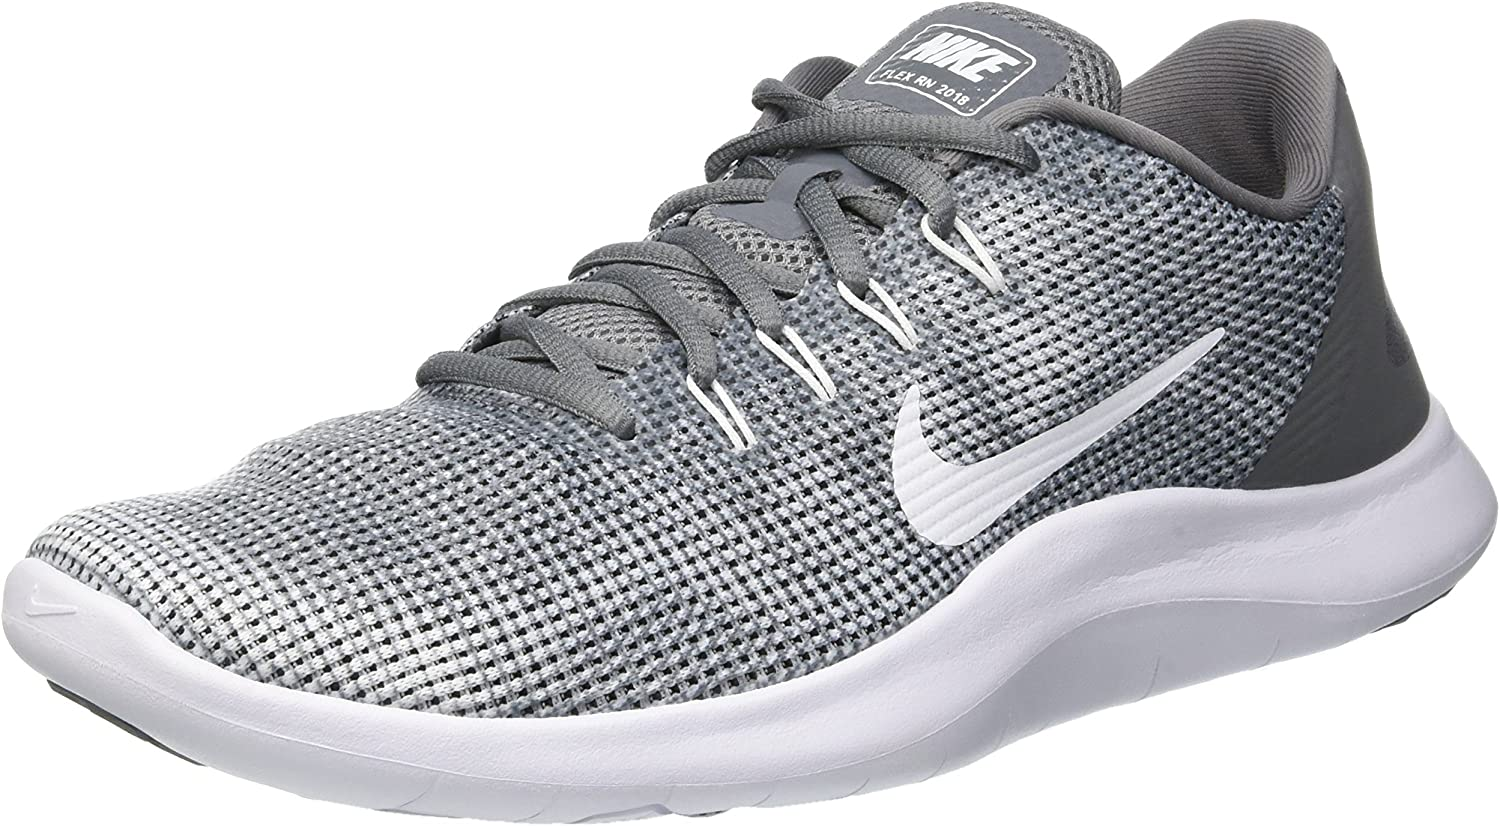 Nike Men's's Flex 2018 Rn Competition Running shoes